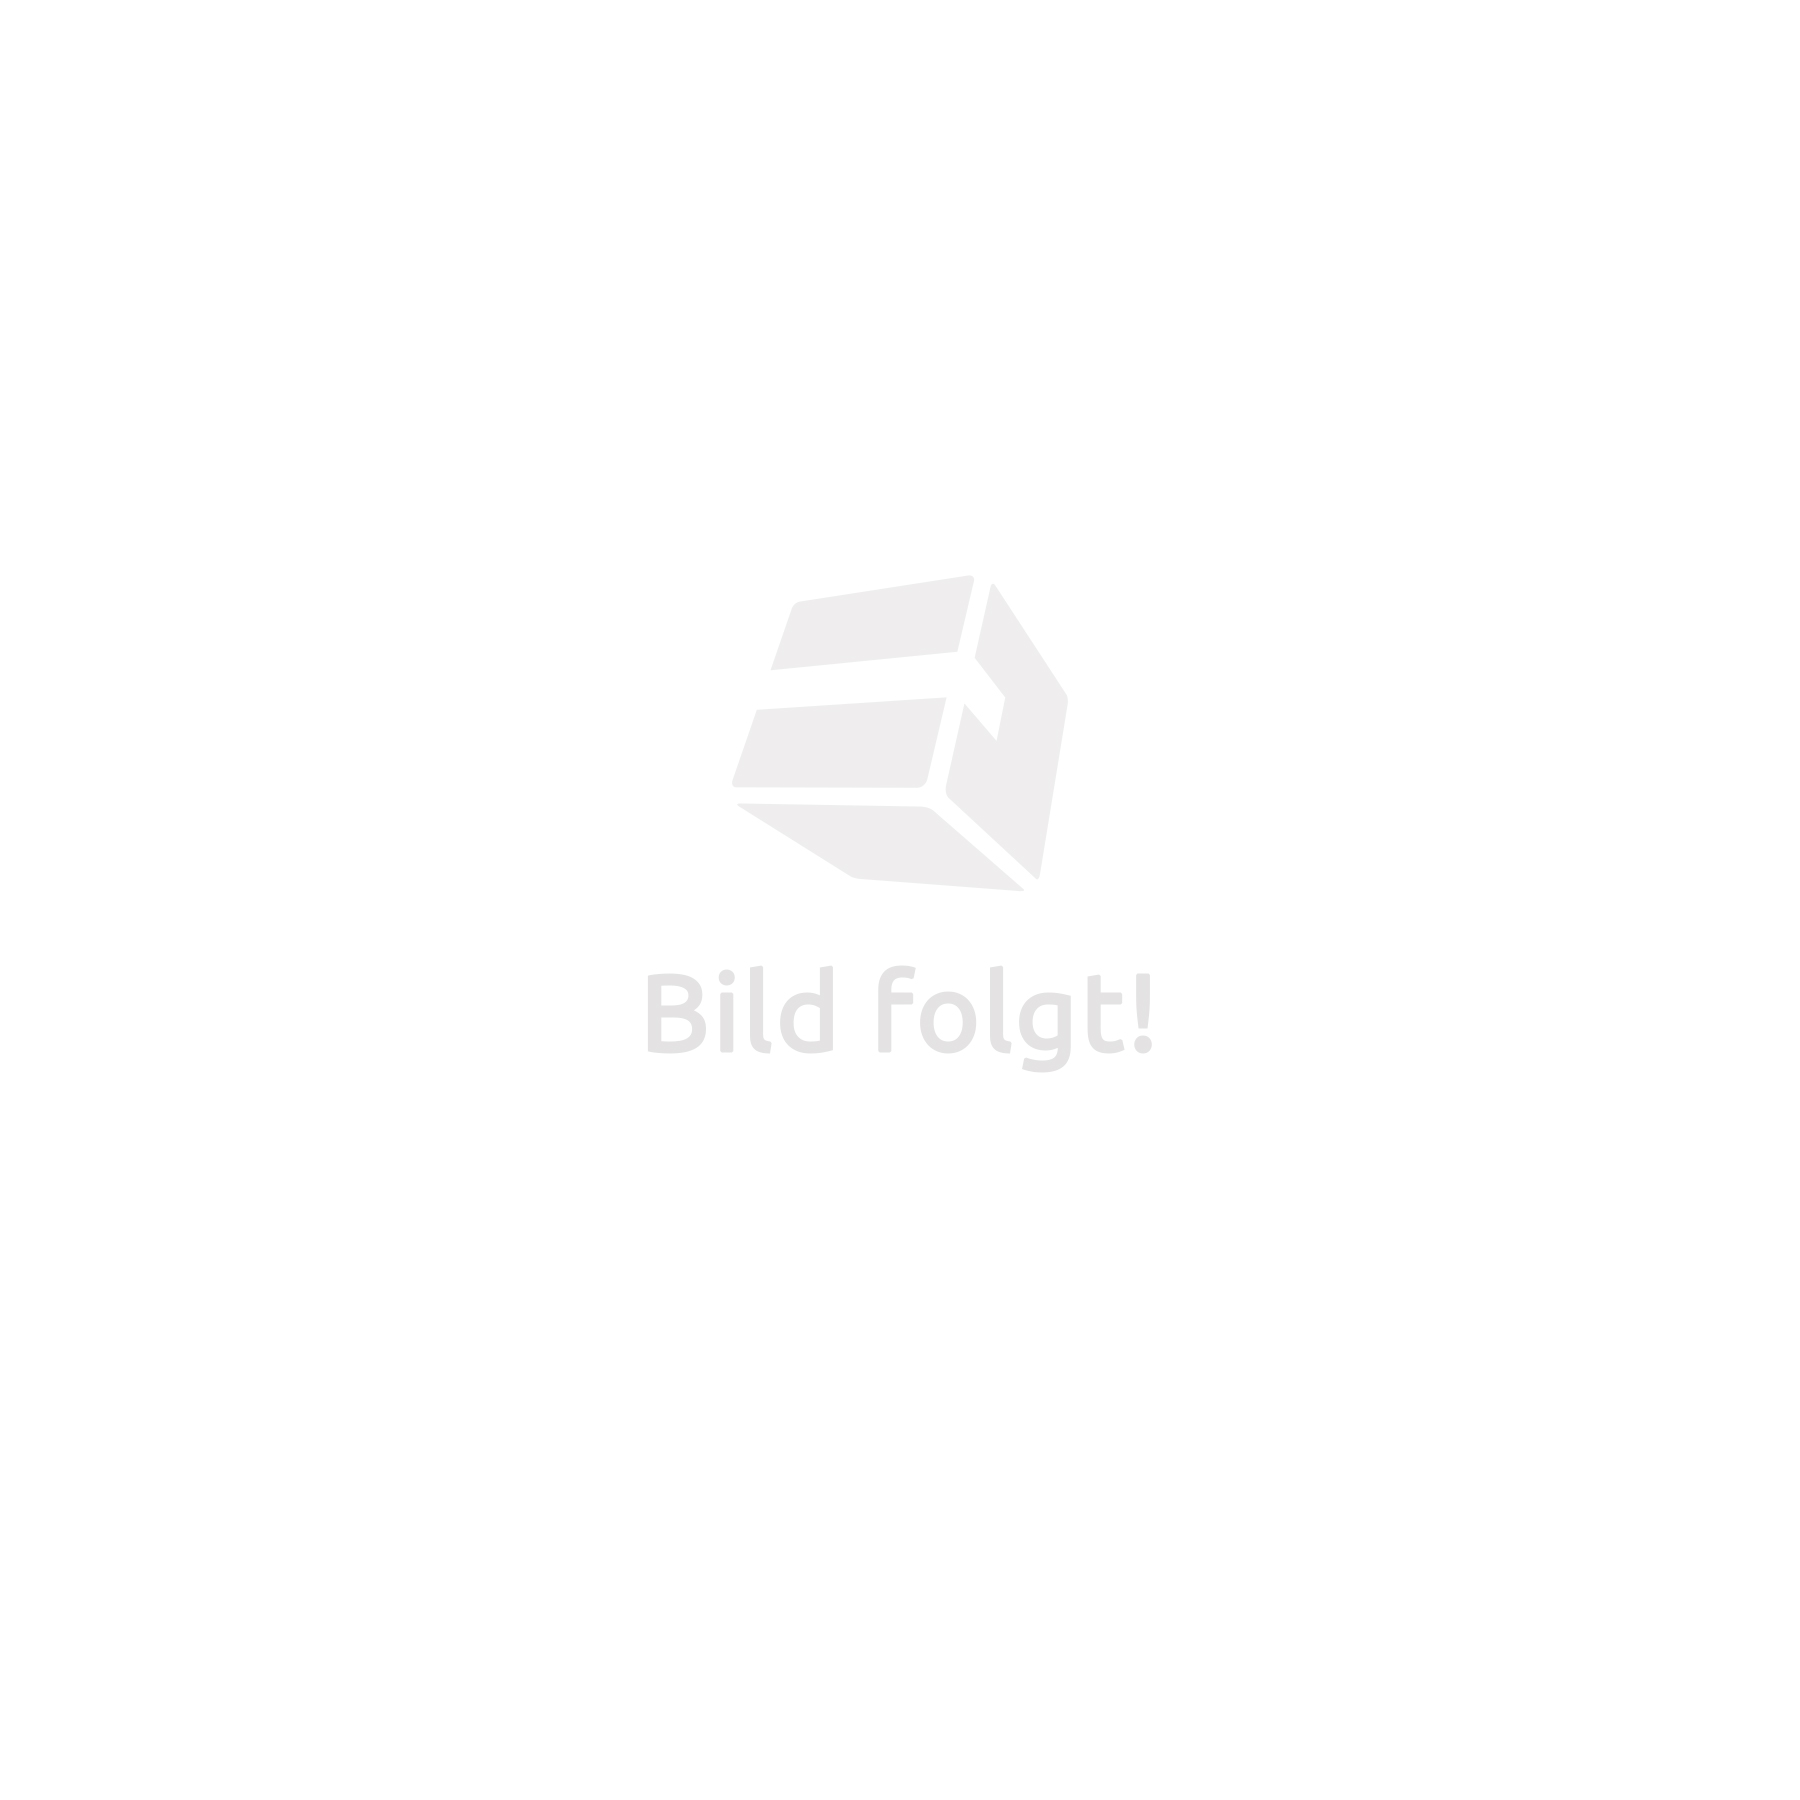 tunnelzelt campingzelt familienzelt gruppenzelt camping zelte 4 6 personen gra ebay. Black Bedroom Furniture Sets. Home Design Ideas